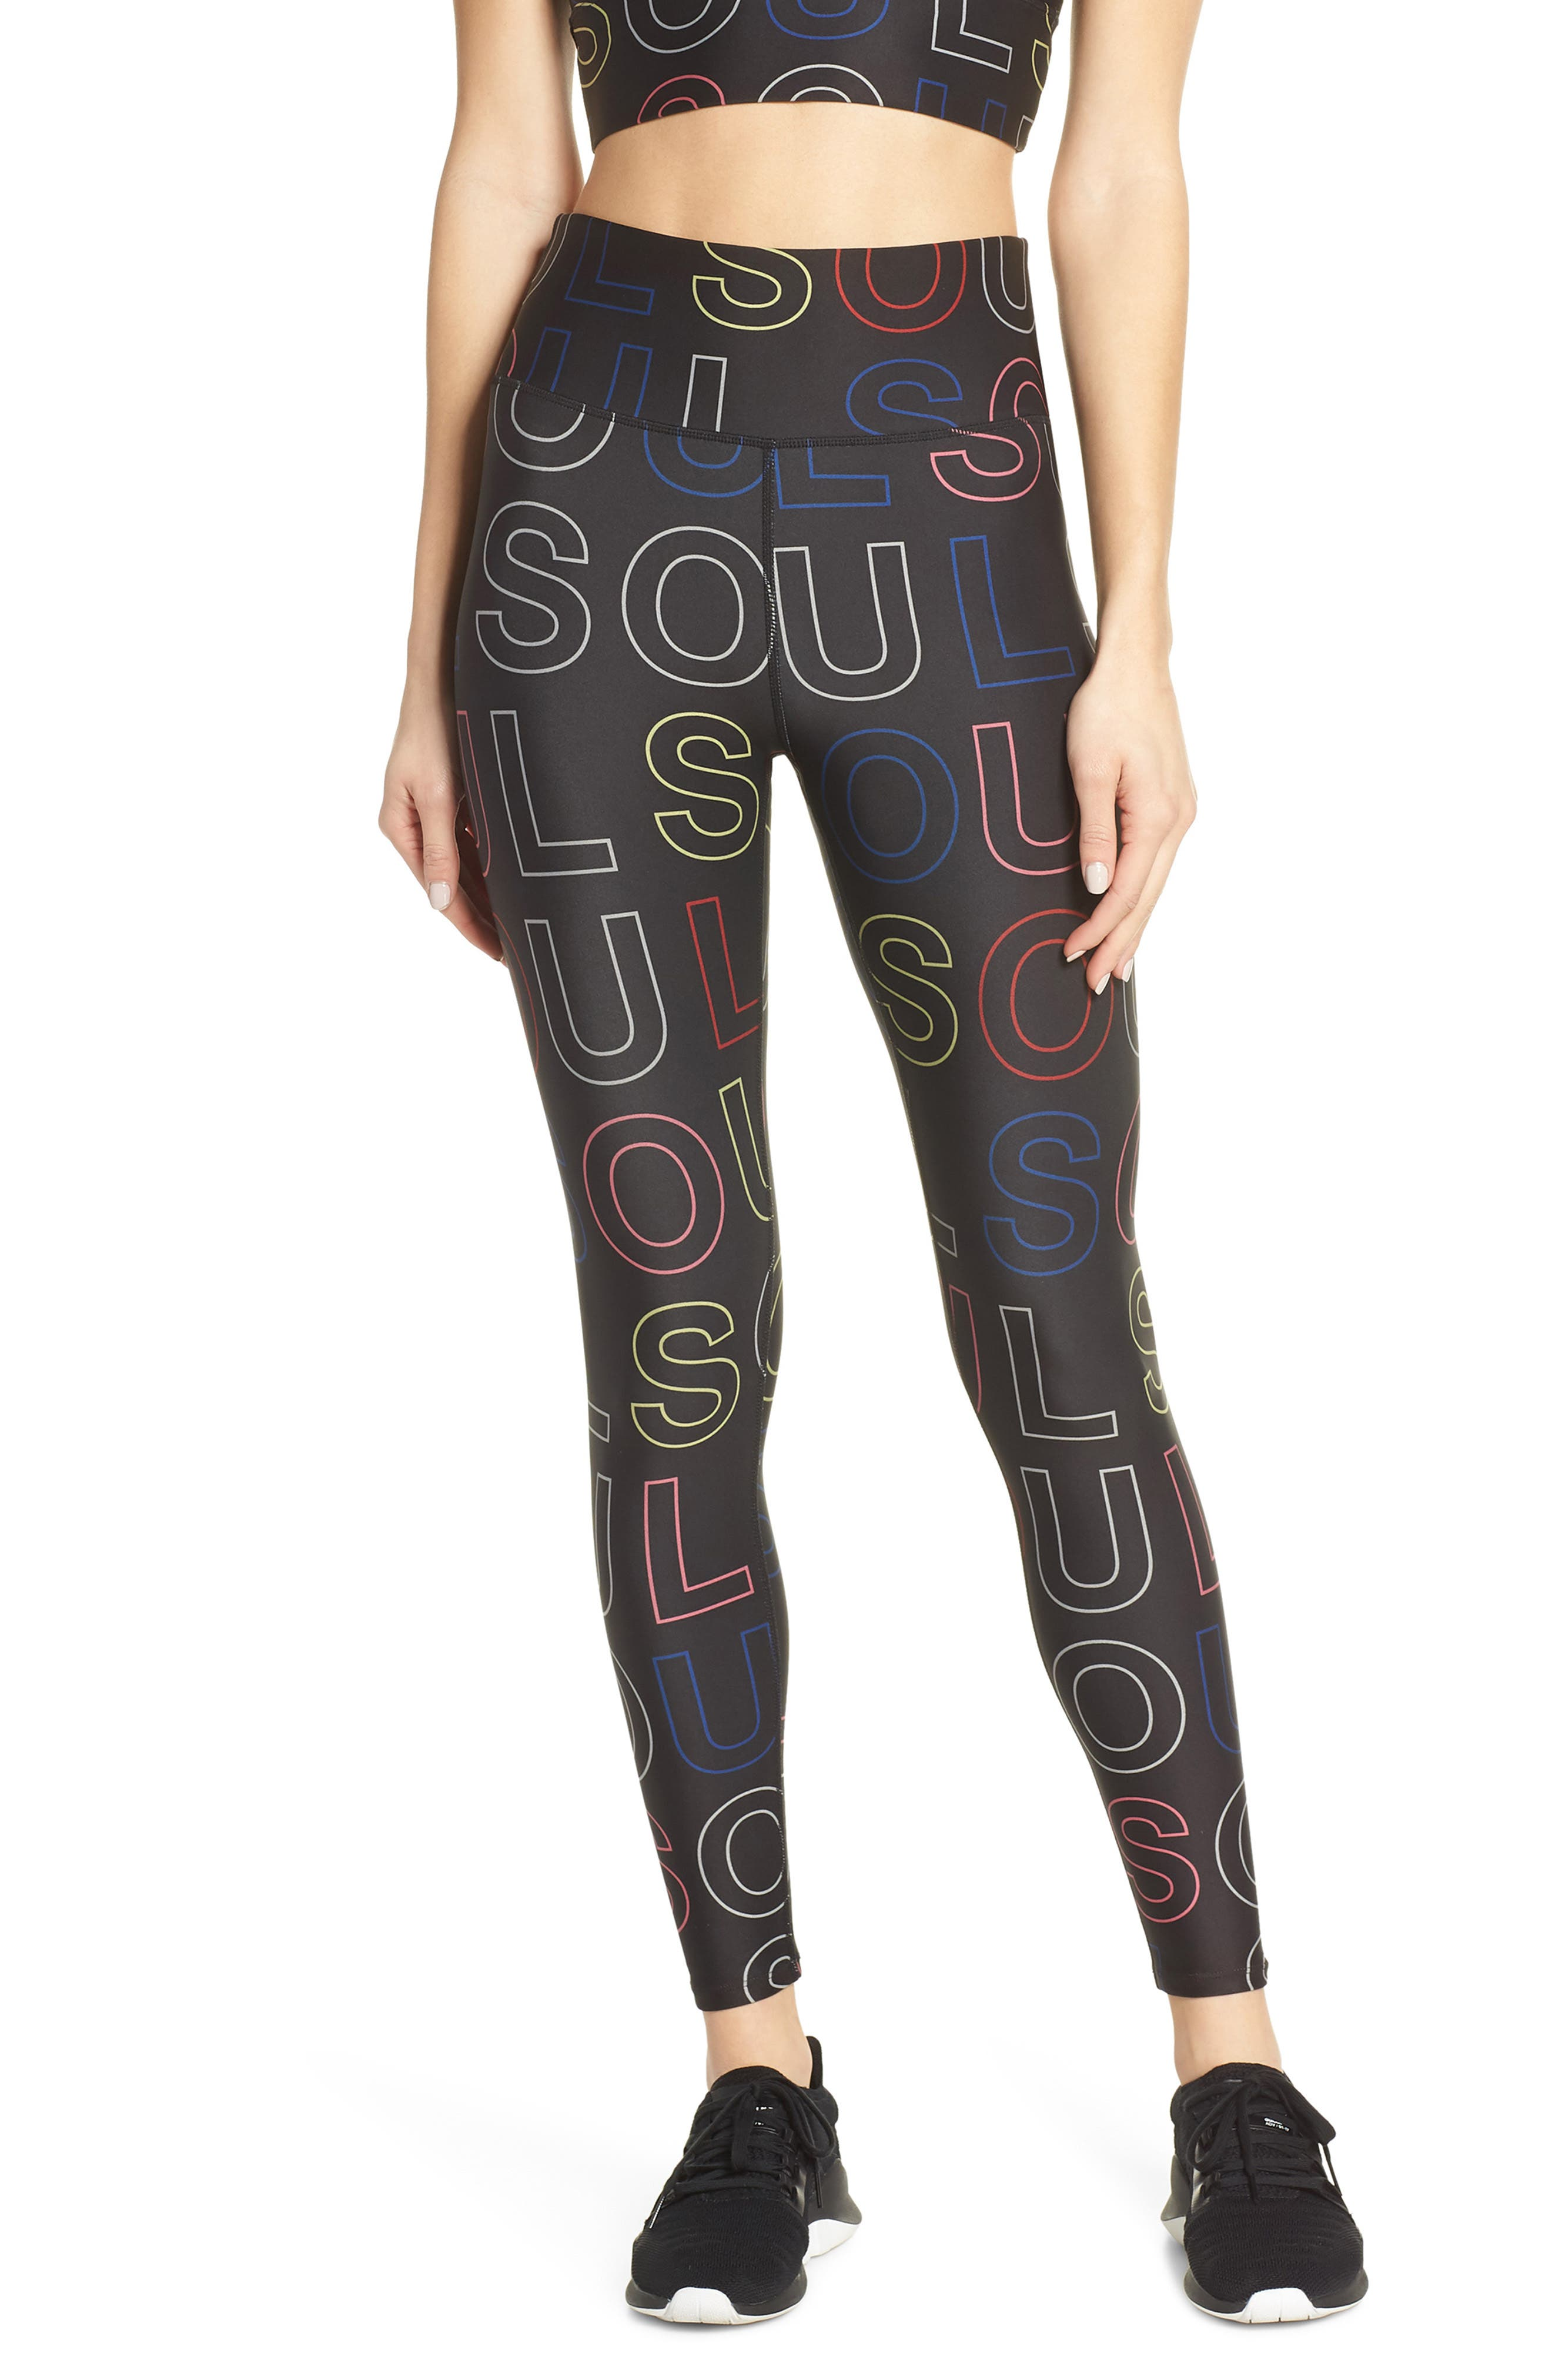 Soul By Soulcycle High Waist Logo Print Tights, Black